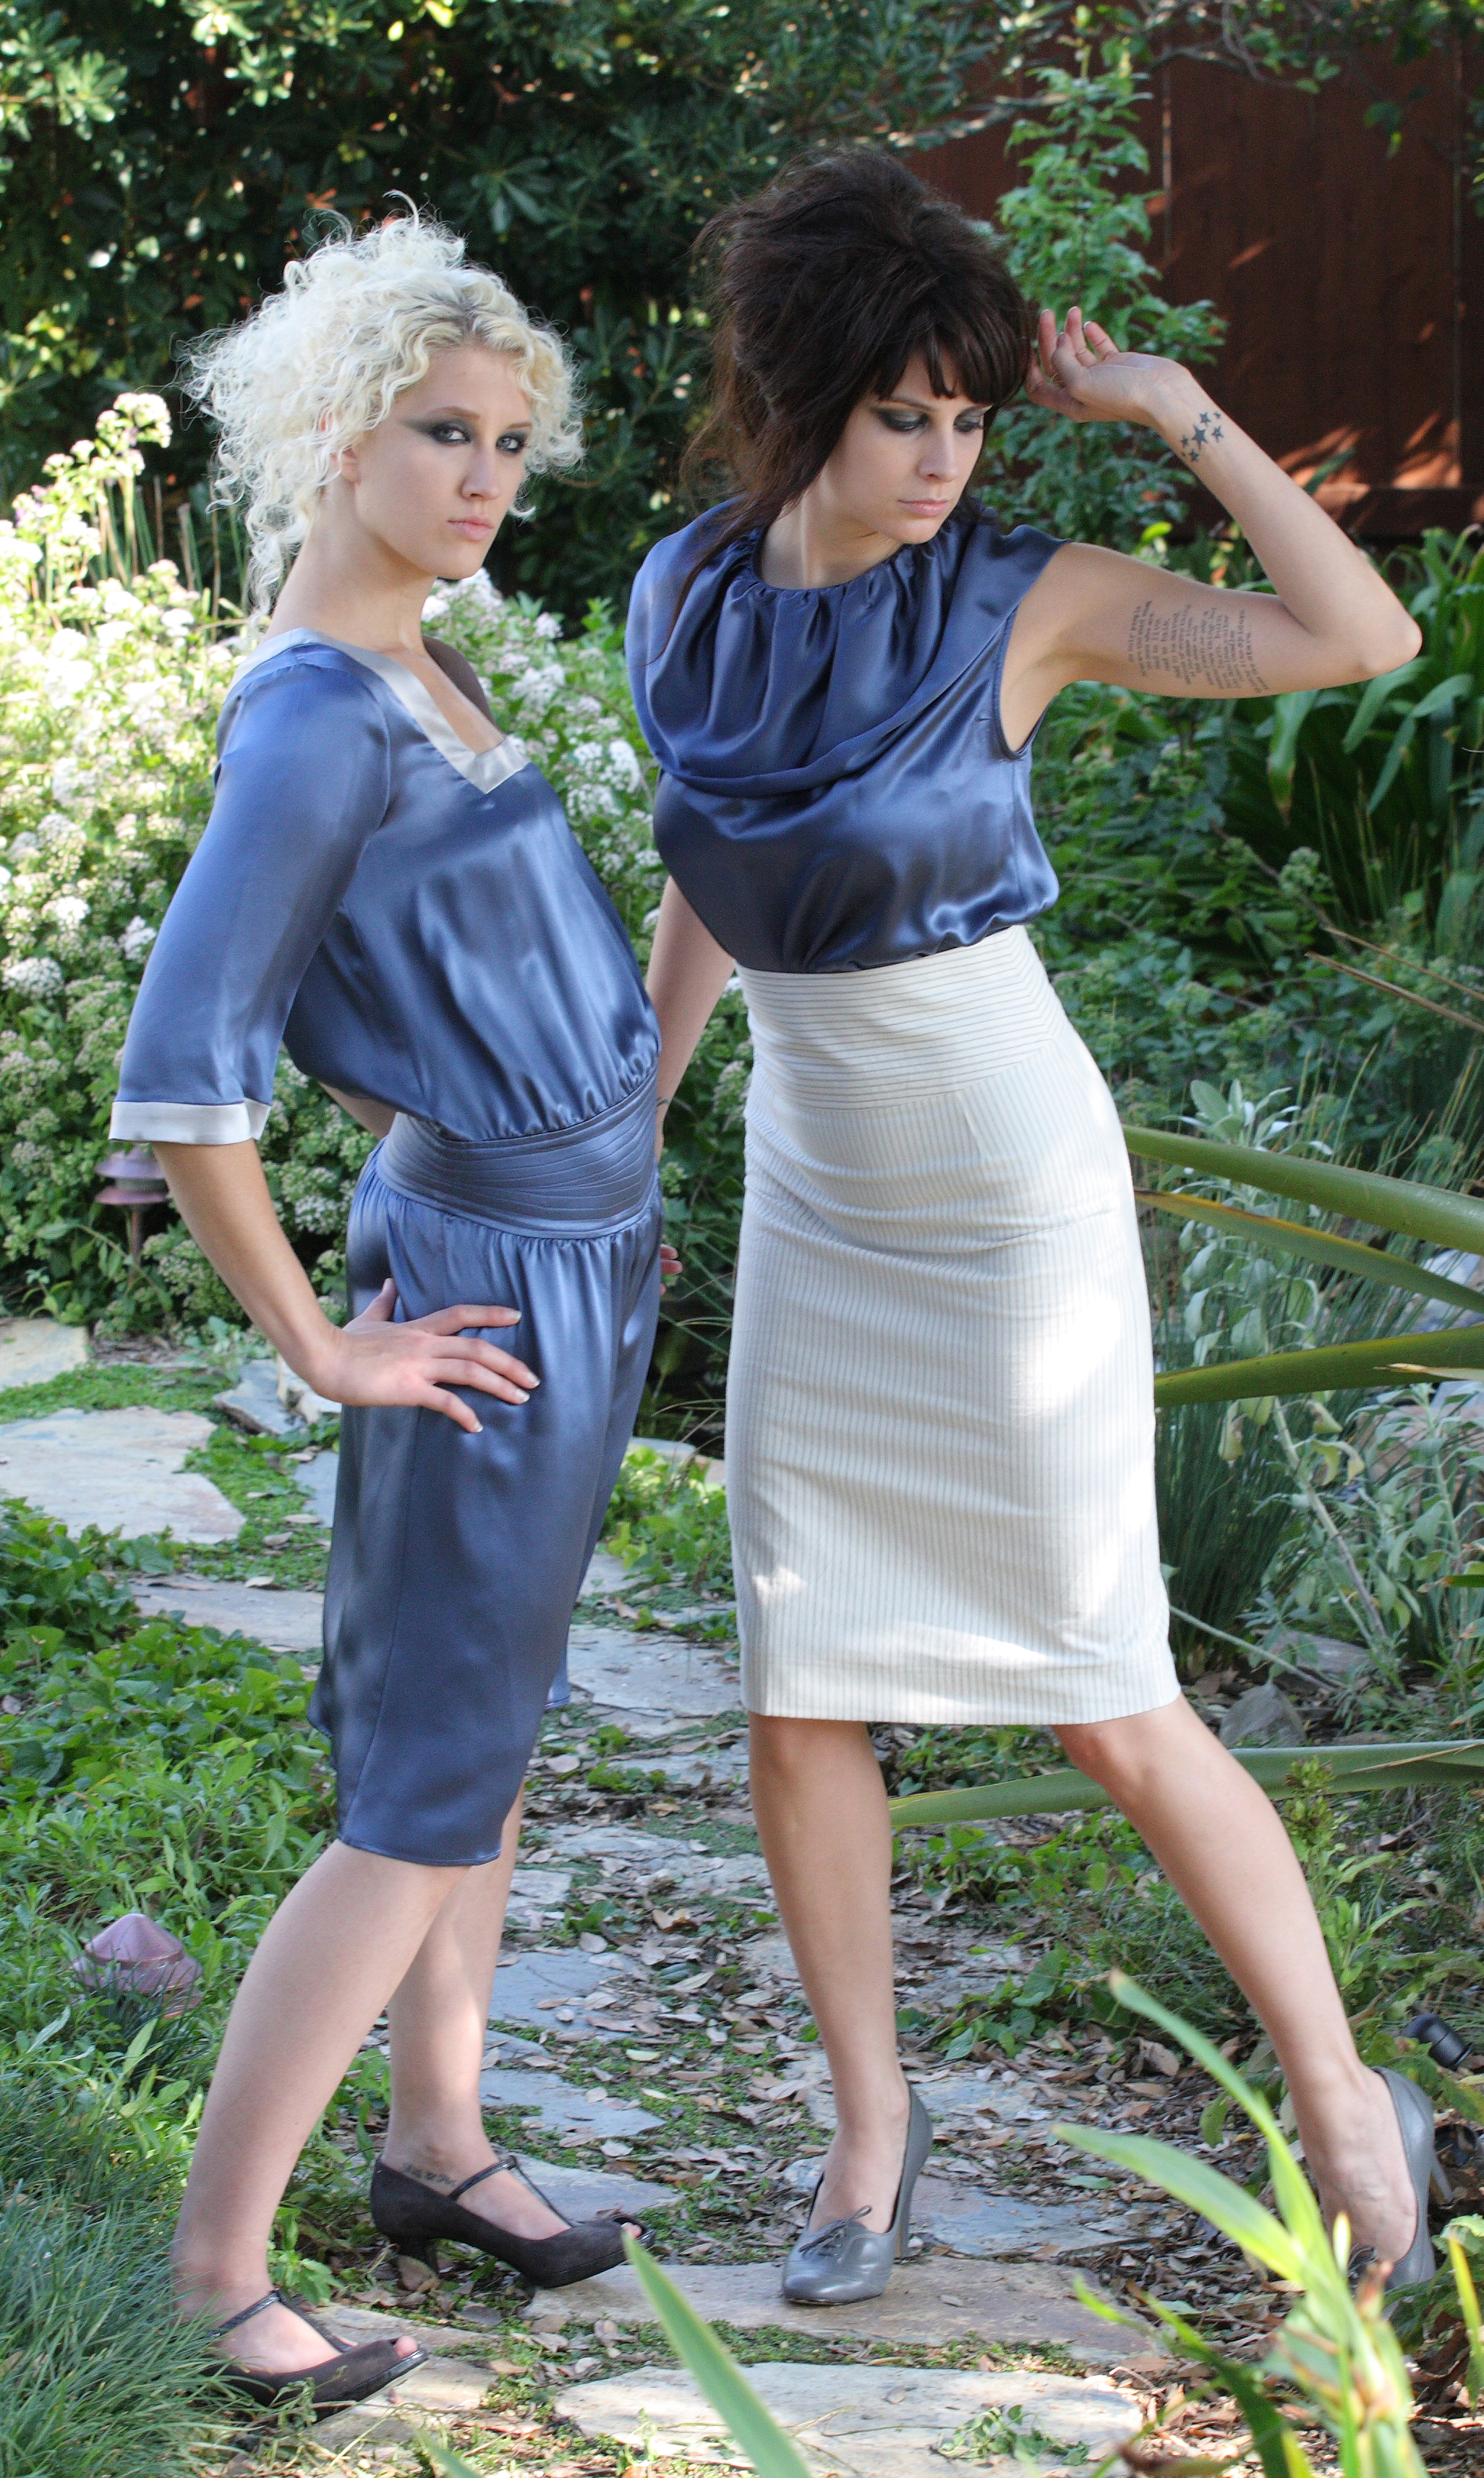 Quilt Waist Square Neck in Blue Silk Charmeuse.  Collar Sheath Blouse in Blue Silk Charmeuse.   High Waist Pencil Skirt in Pinstriped Italian Cotton Twill.